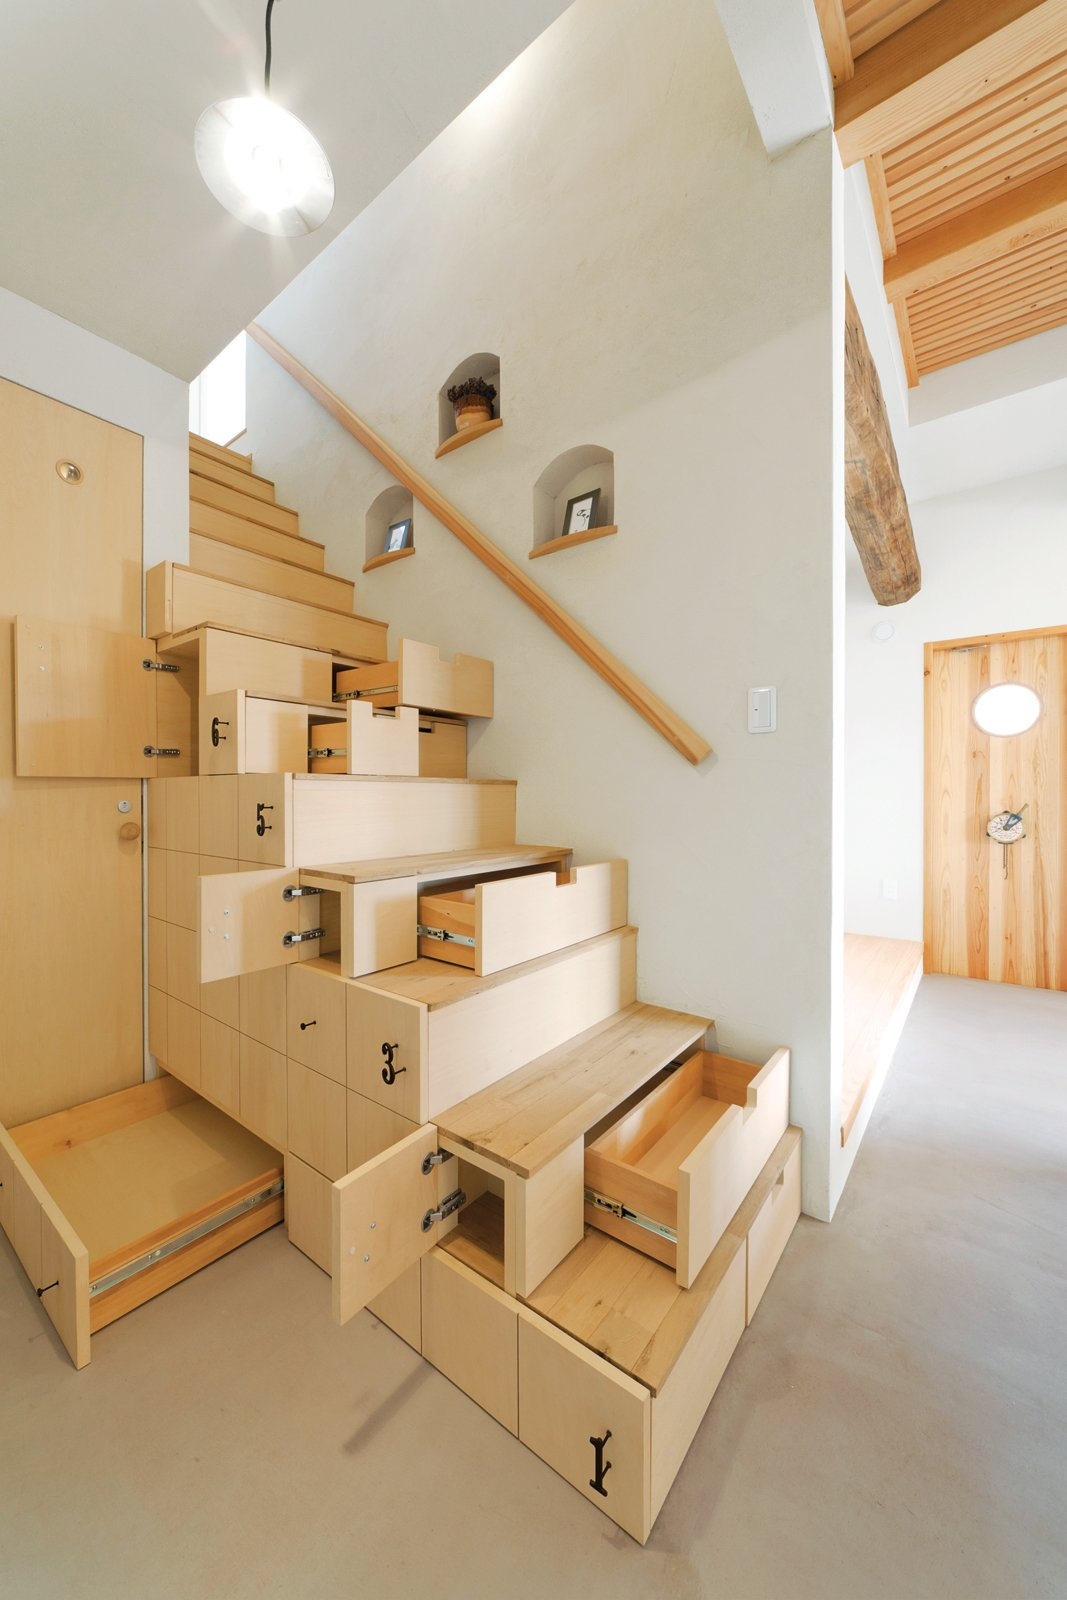 Photo caption: In traditional Japanese houses, clever carpenters often combined staircases with storage to maximize living space and storage.  Photo 1 of 10 in 10 Clever Ways to Sneak Storage Into Your Renovation